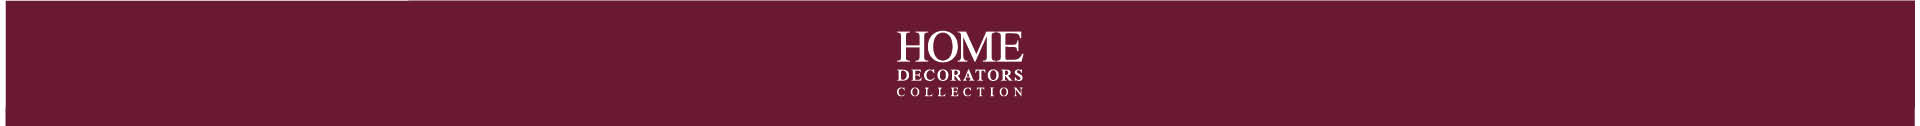 Home Decorators Collection Strand Woven Distressed Dark